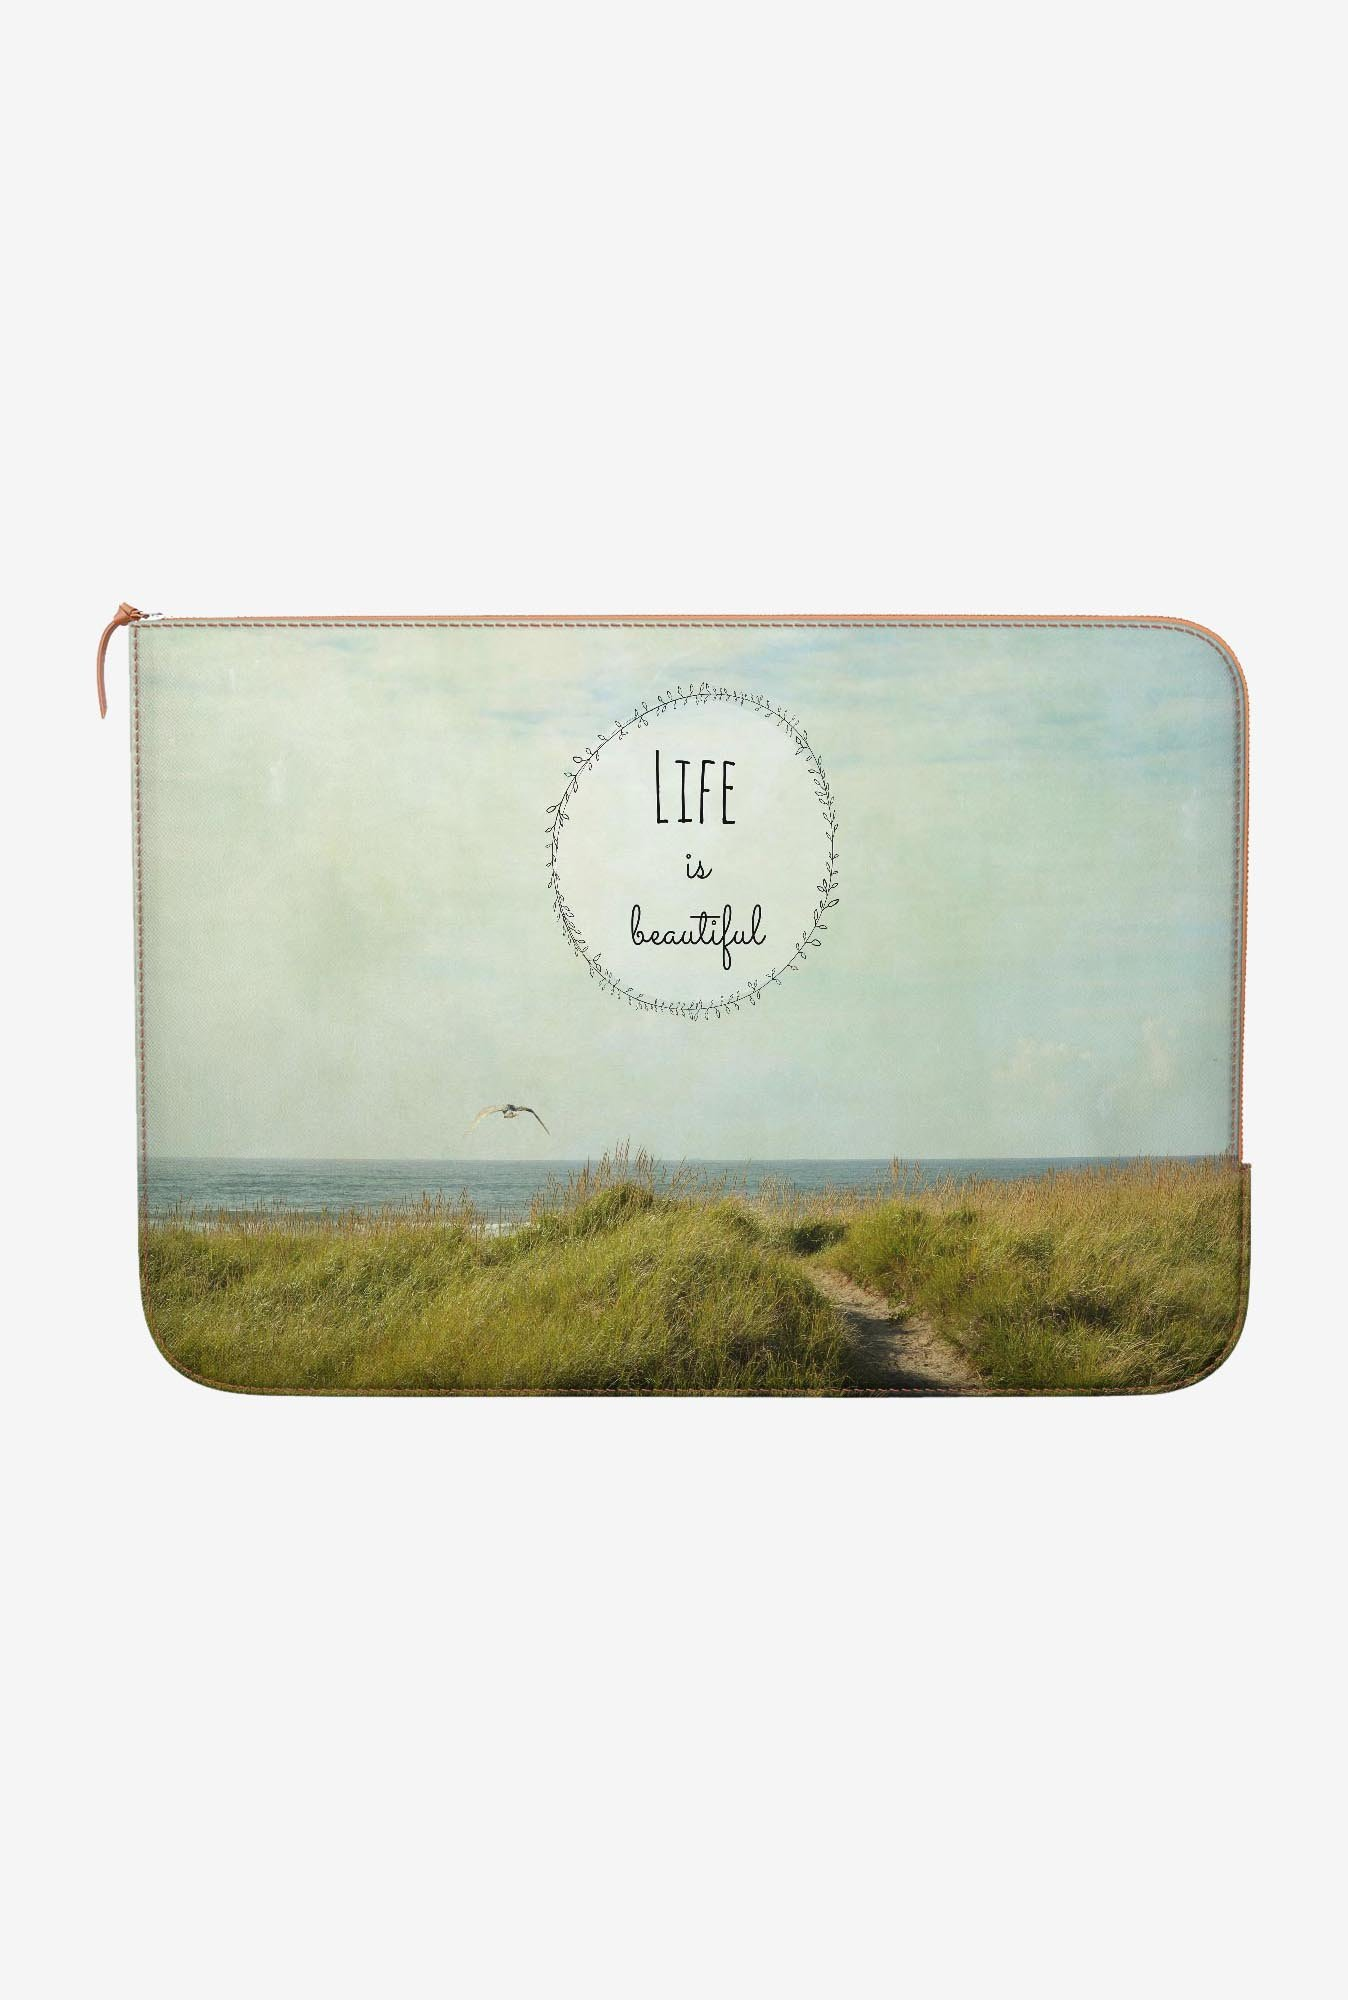 DailyObjects Beautiful life MacBook Air 11 Zippered Sleeve